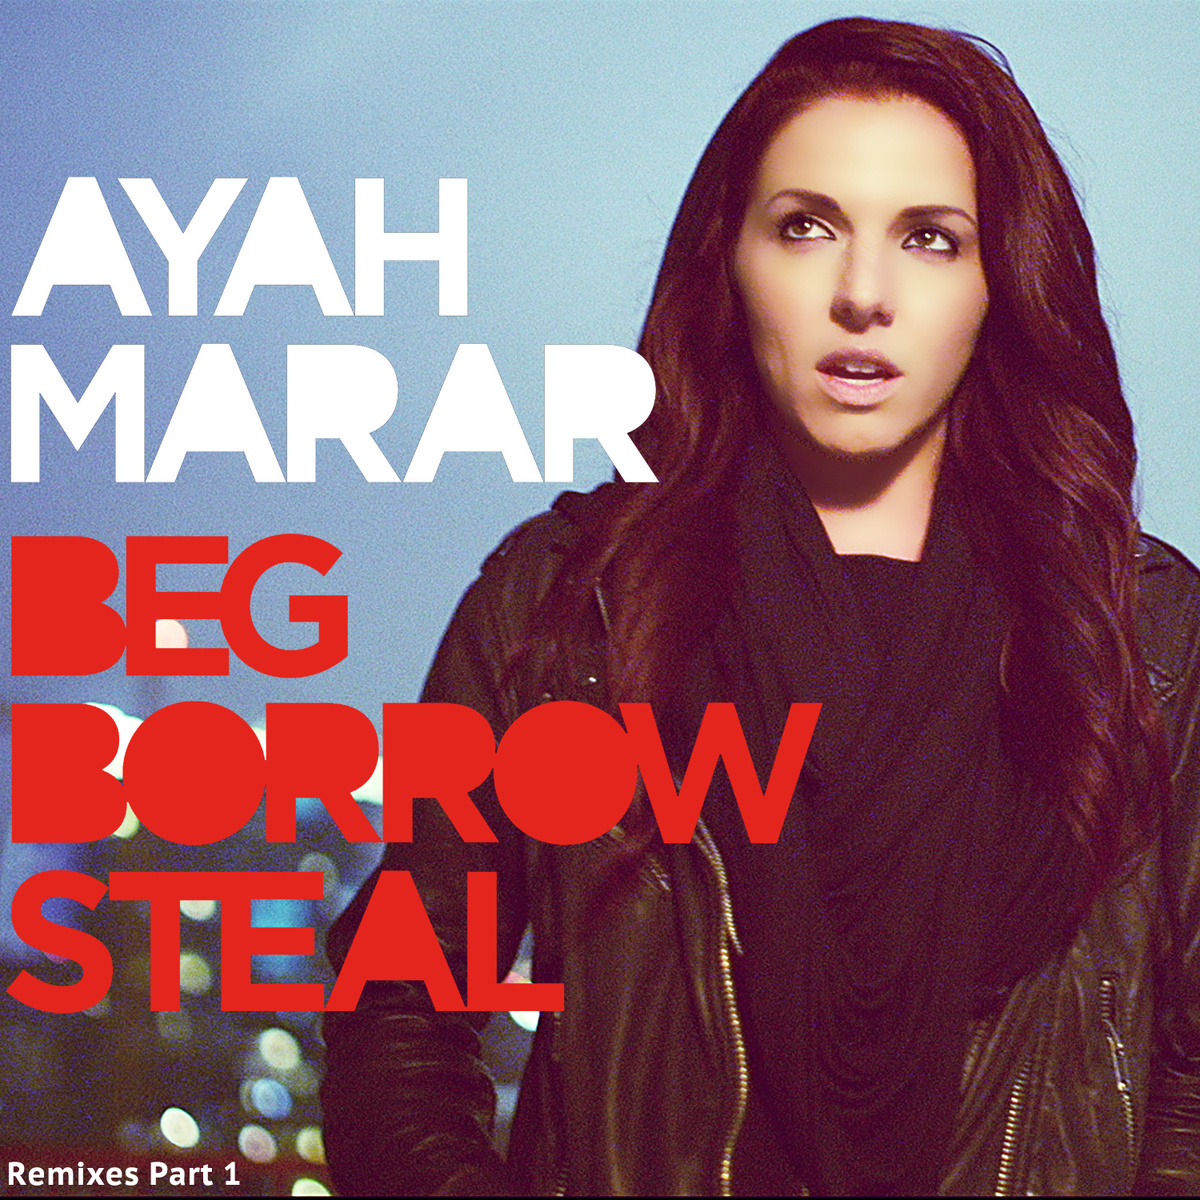 Ayah Marar – Beg Borrow Steal (Robot Dentist Remix)